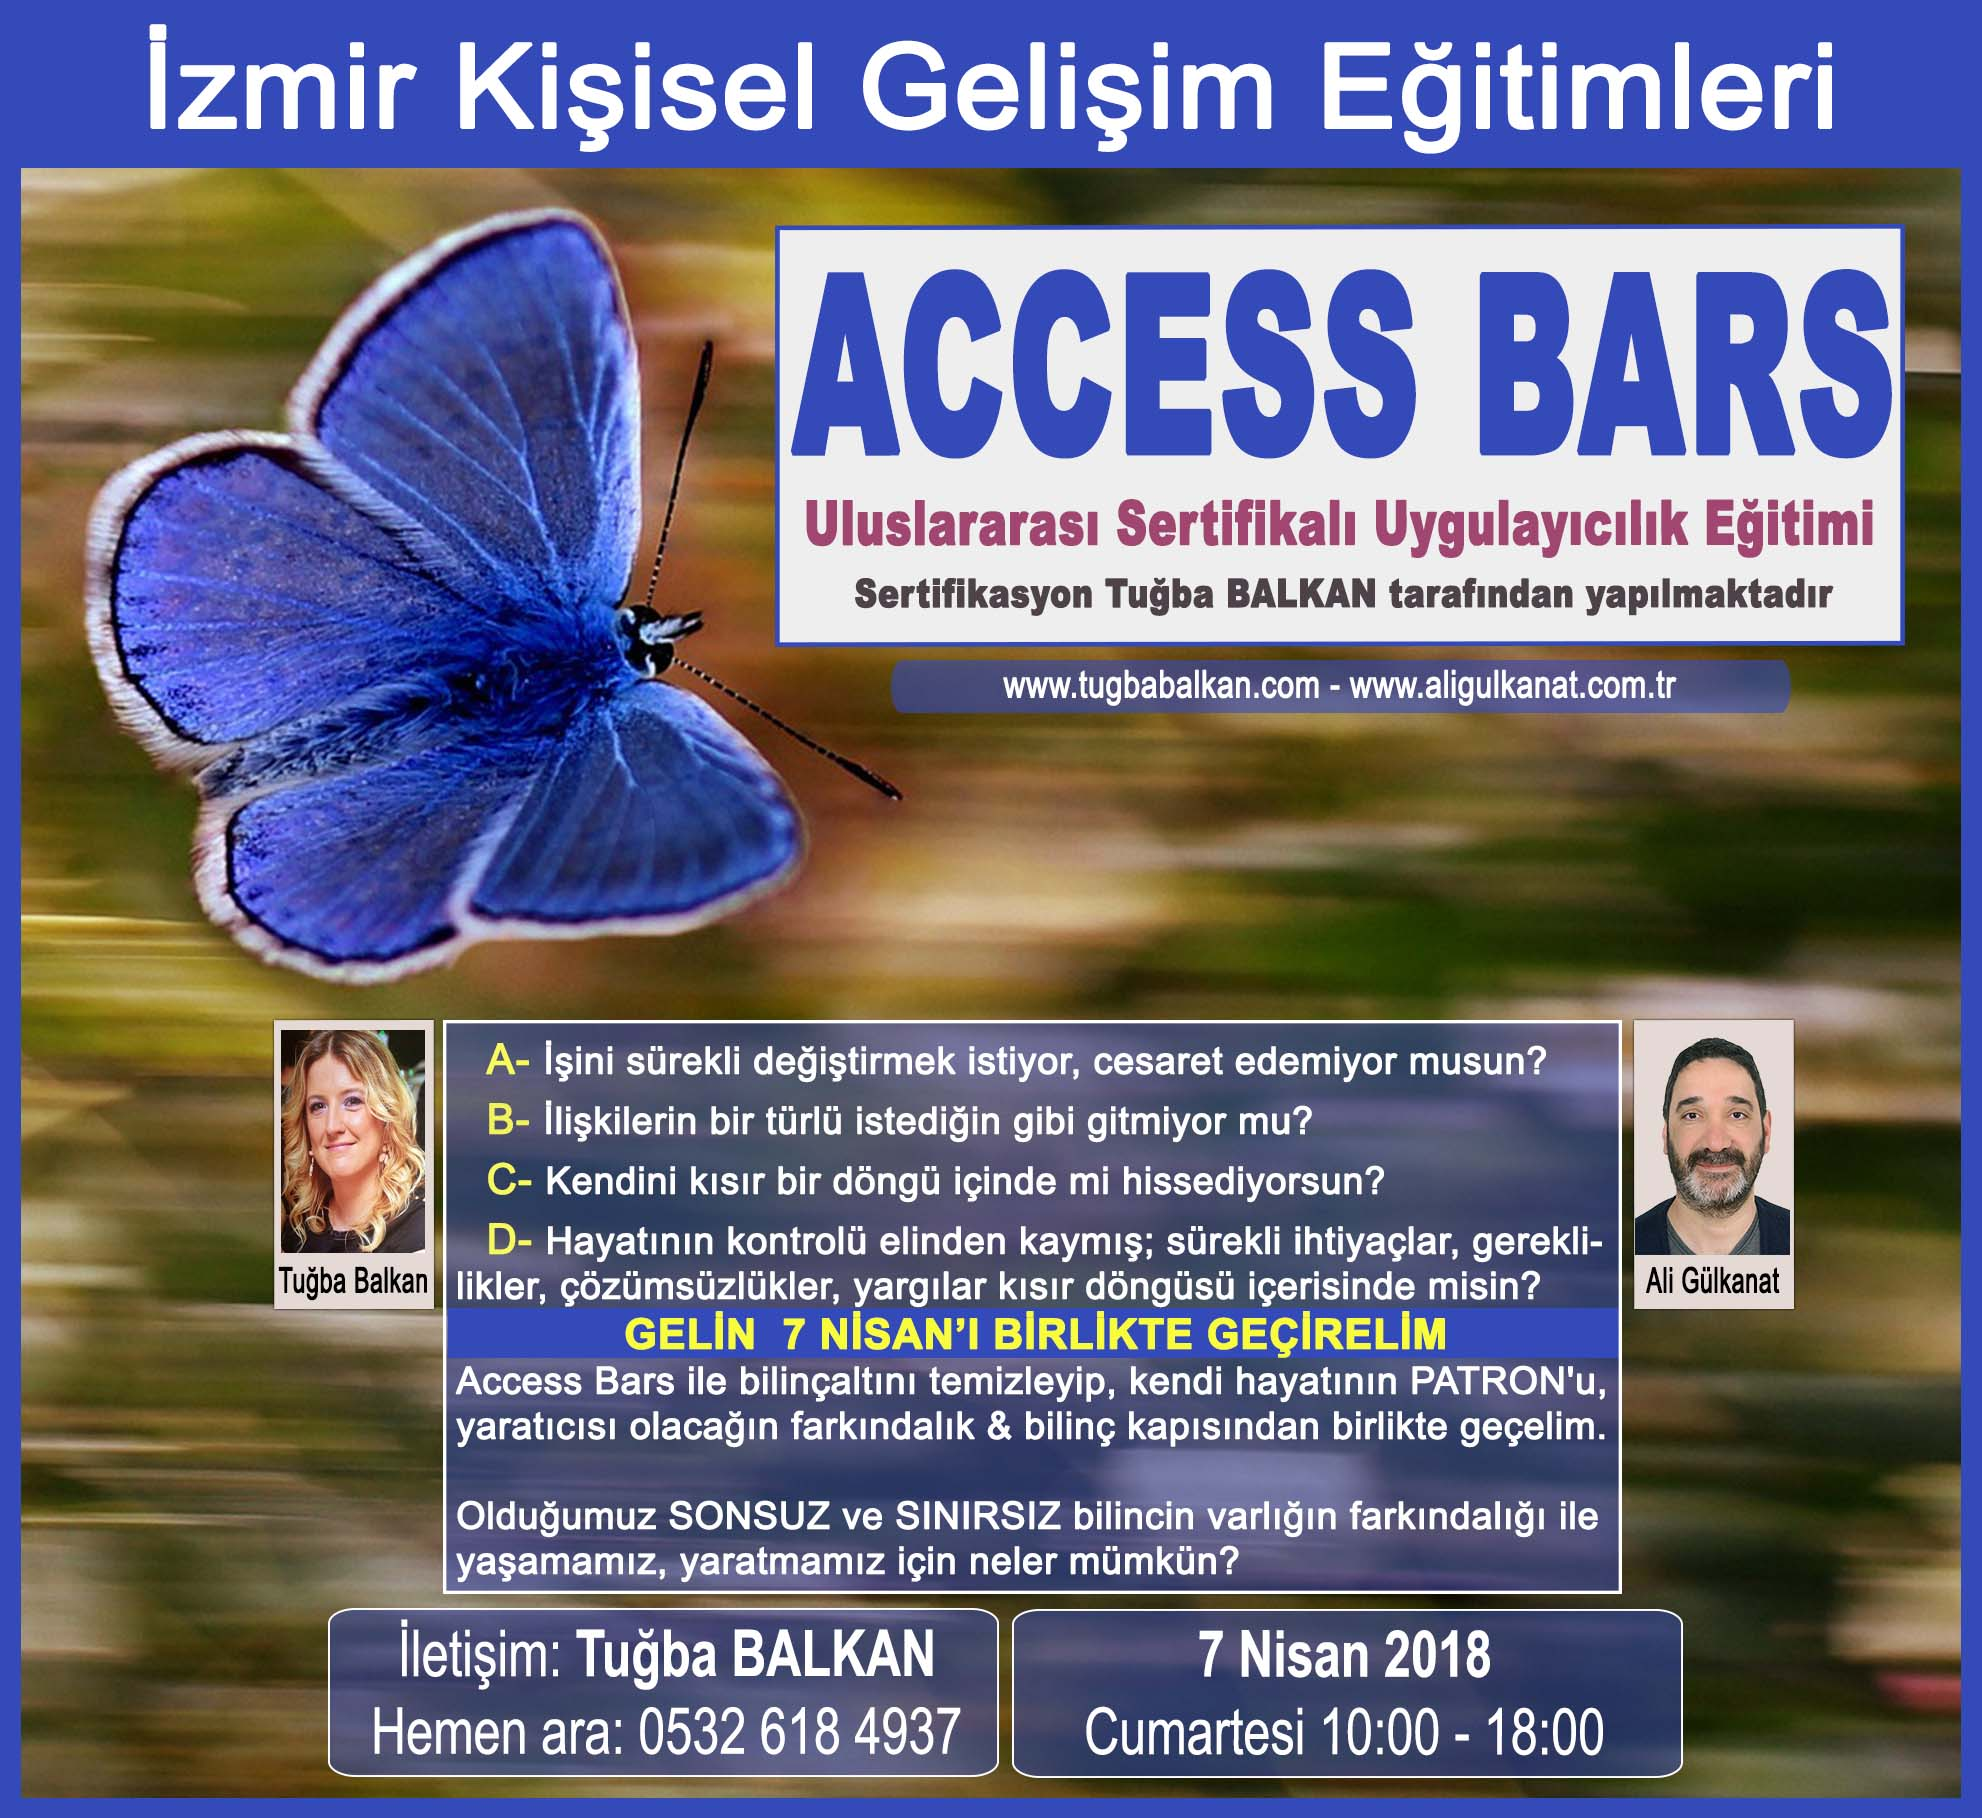 access-bars-tanitim-7-nisan-2018-1